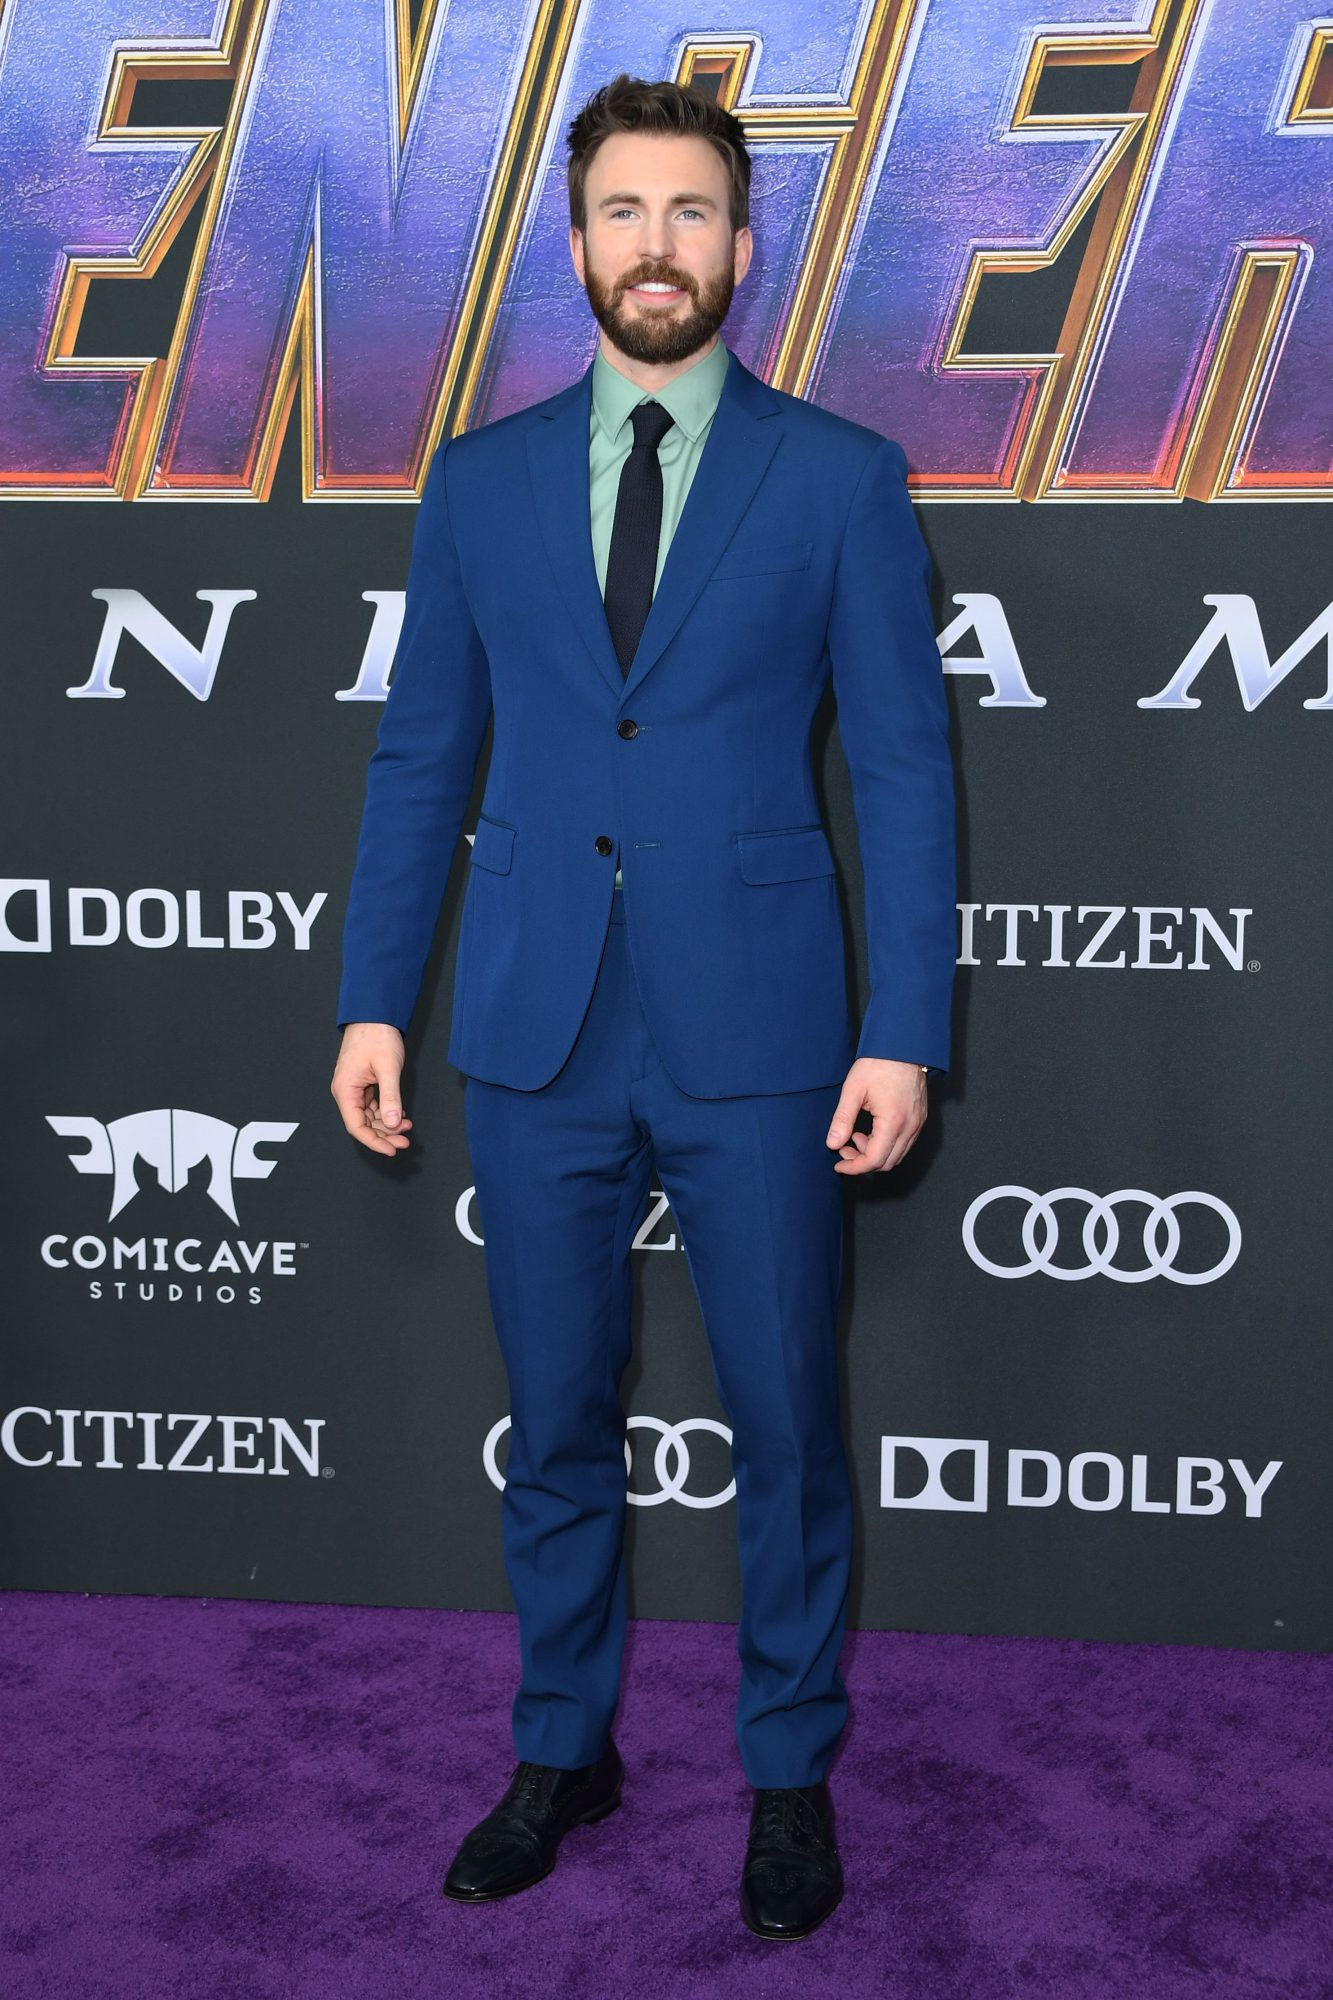 """US actor Chris Evans arrives for the World premiere of Marvel Studios' """"Avengers: Endgame"""" at the Los Angeles Convention Center on April 22, 2019 in Los Angeles. (Photo by VALERIE MACON/AFP/Getty Images)"""